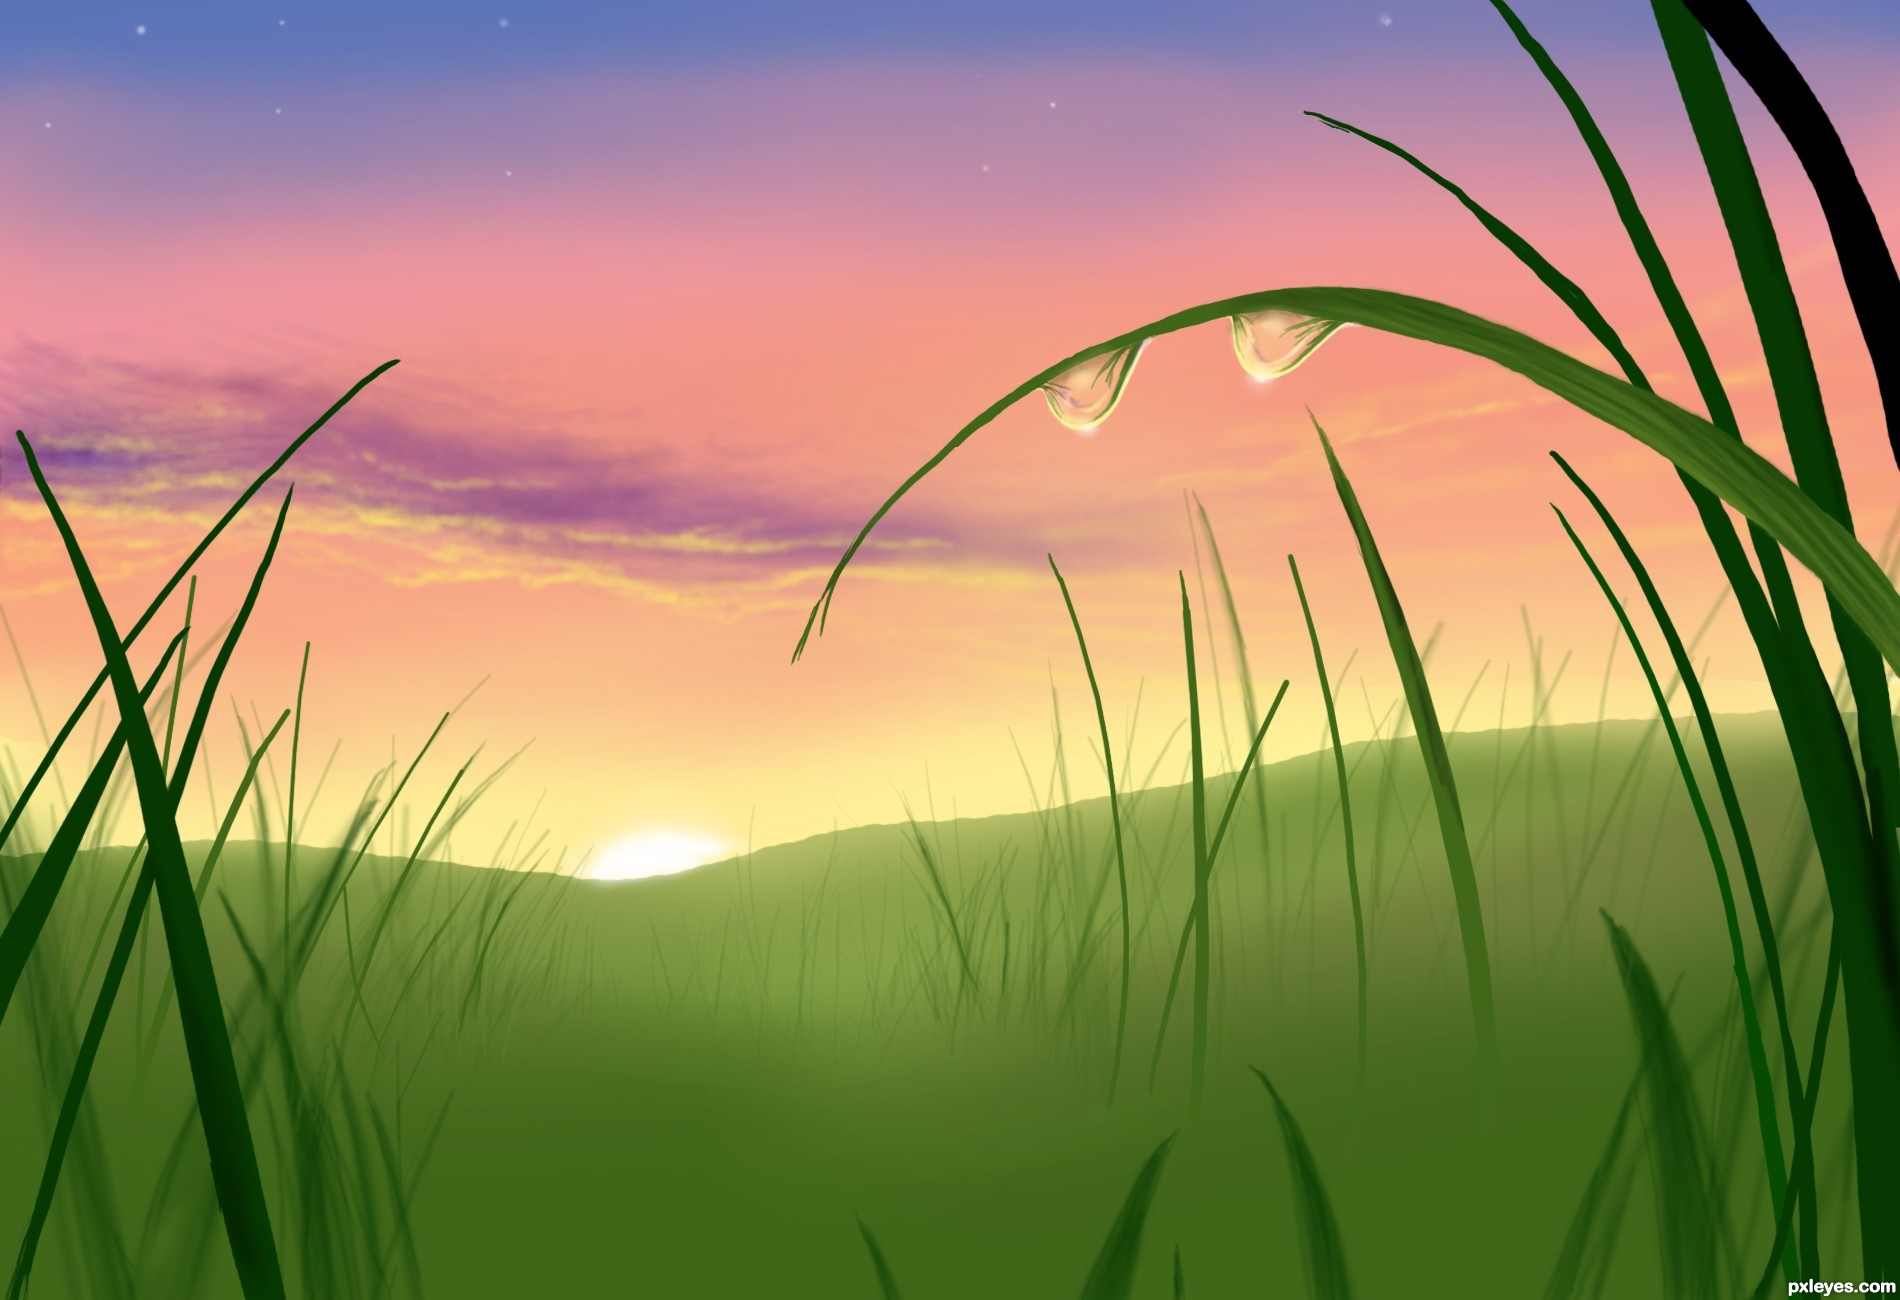 Sunrise picture, by marina08 for: sunrise sunset drawing.